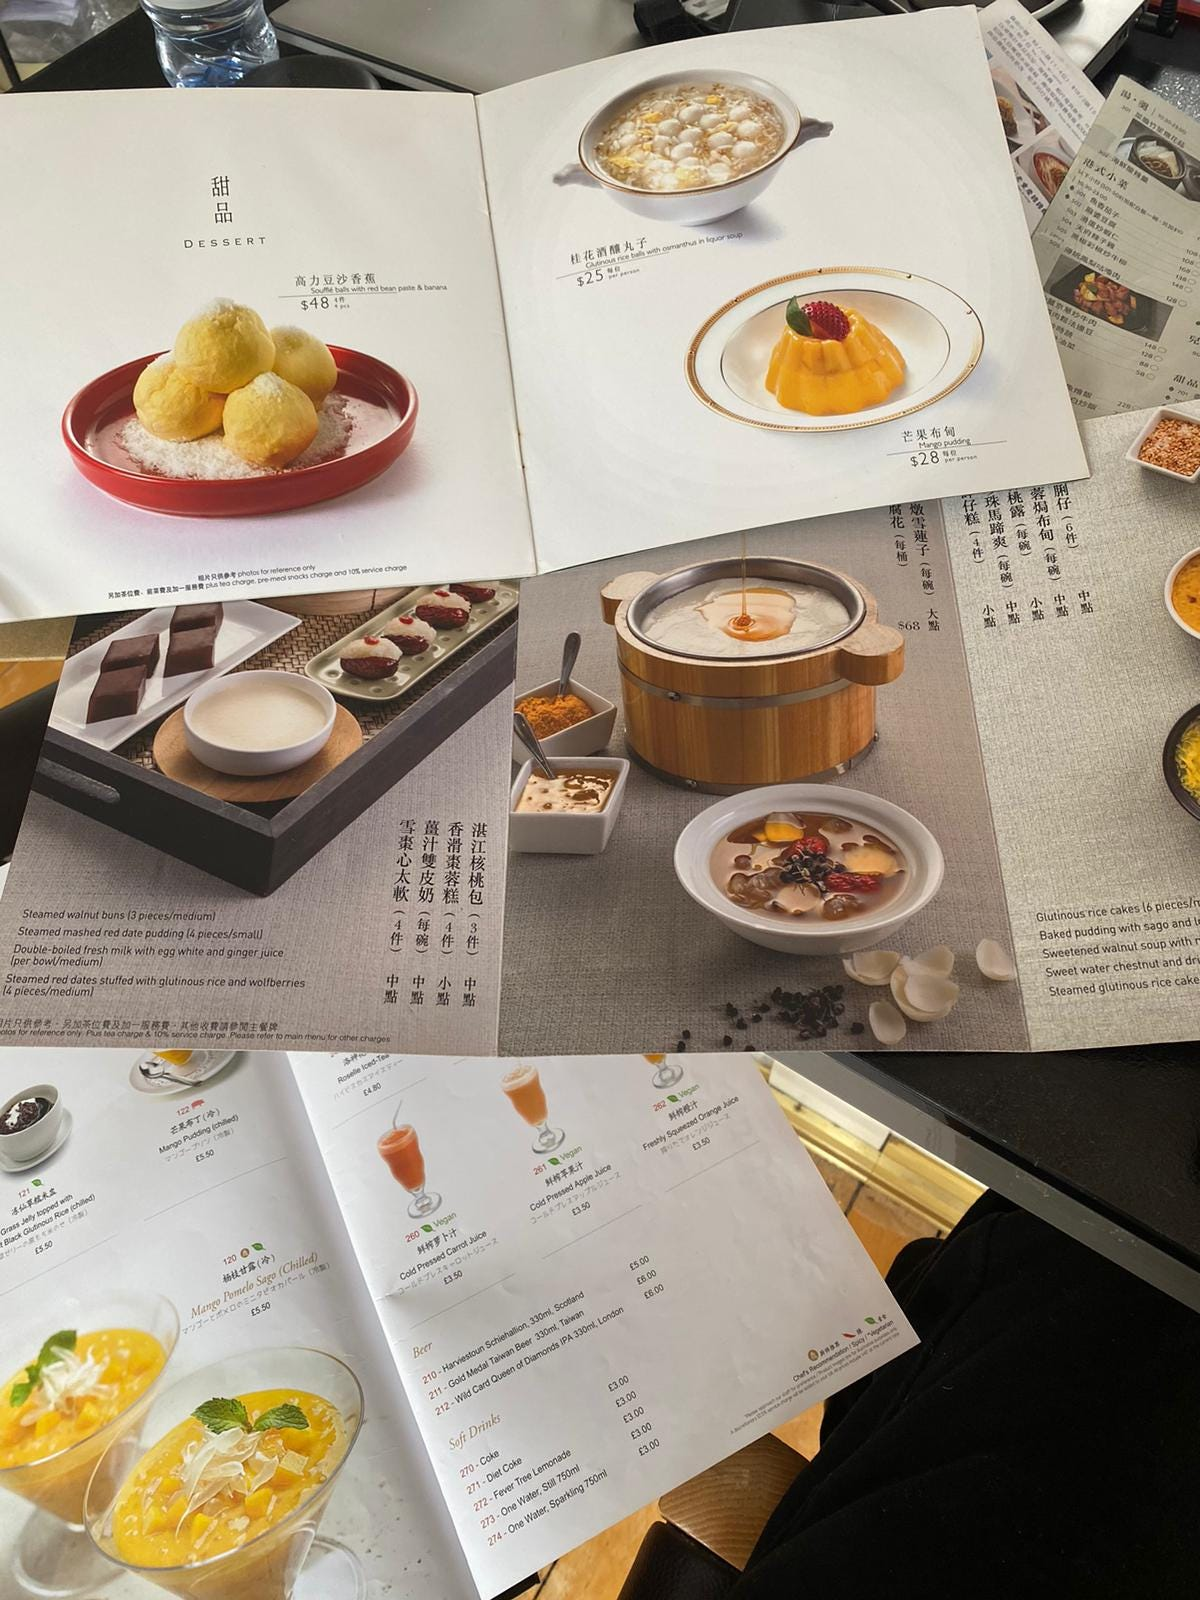 An overhead shot of several Hong Kong restaurant menus open to their dessert pages featuring photos and text